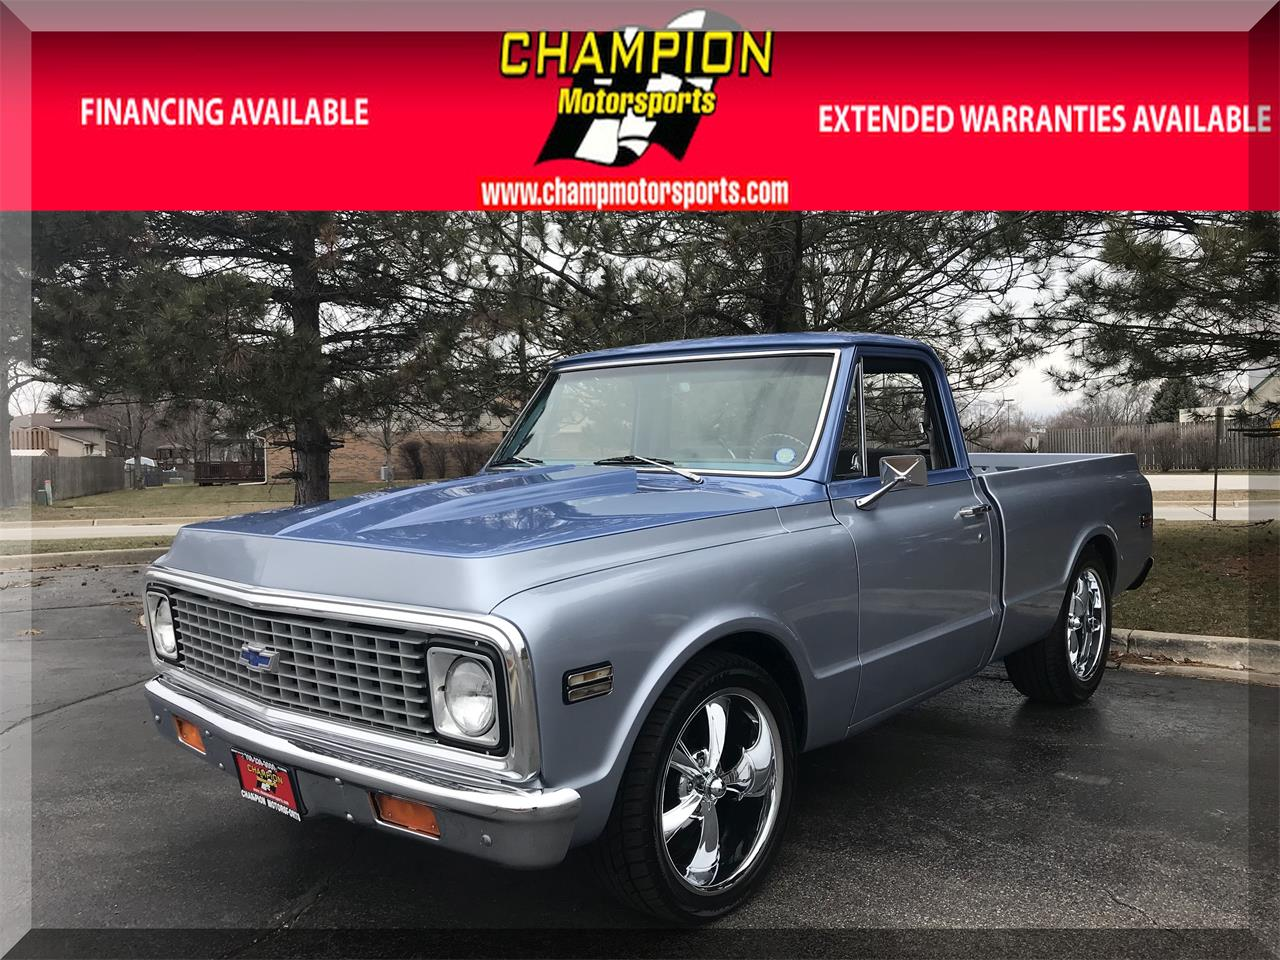 Large Picture of '71 Chevrolet C/K 10 located in Illinois - $28,995.00 - N7ED